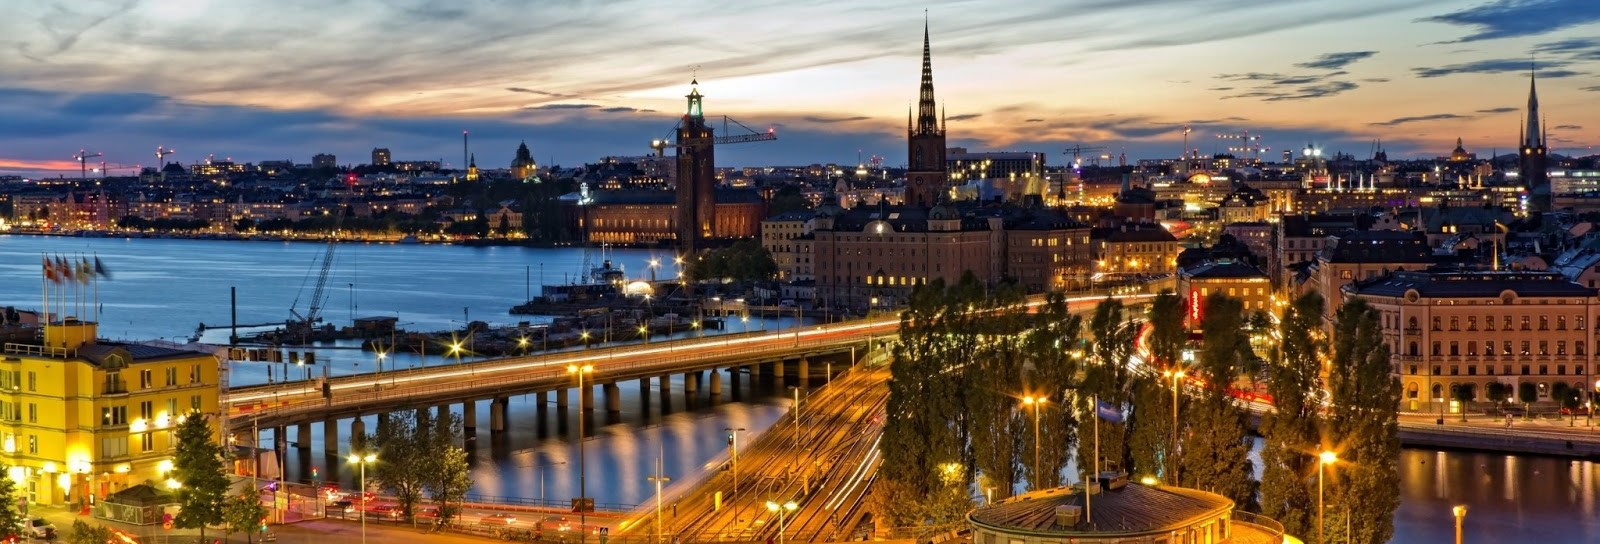 Stockholm-City-Sweden-Wallpaper-e1420628817118